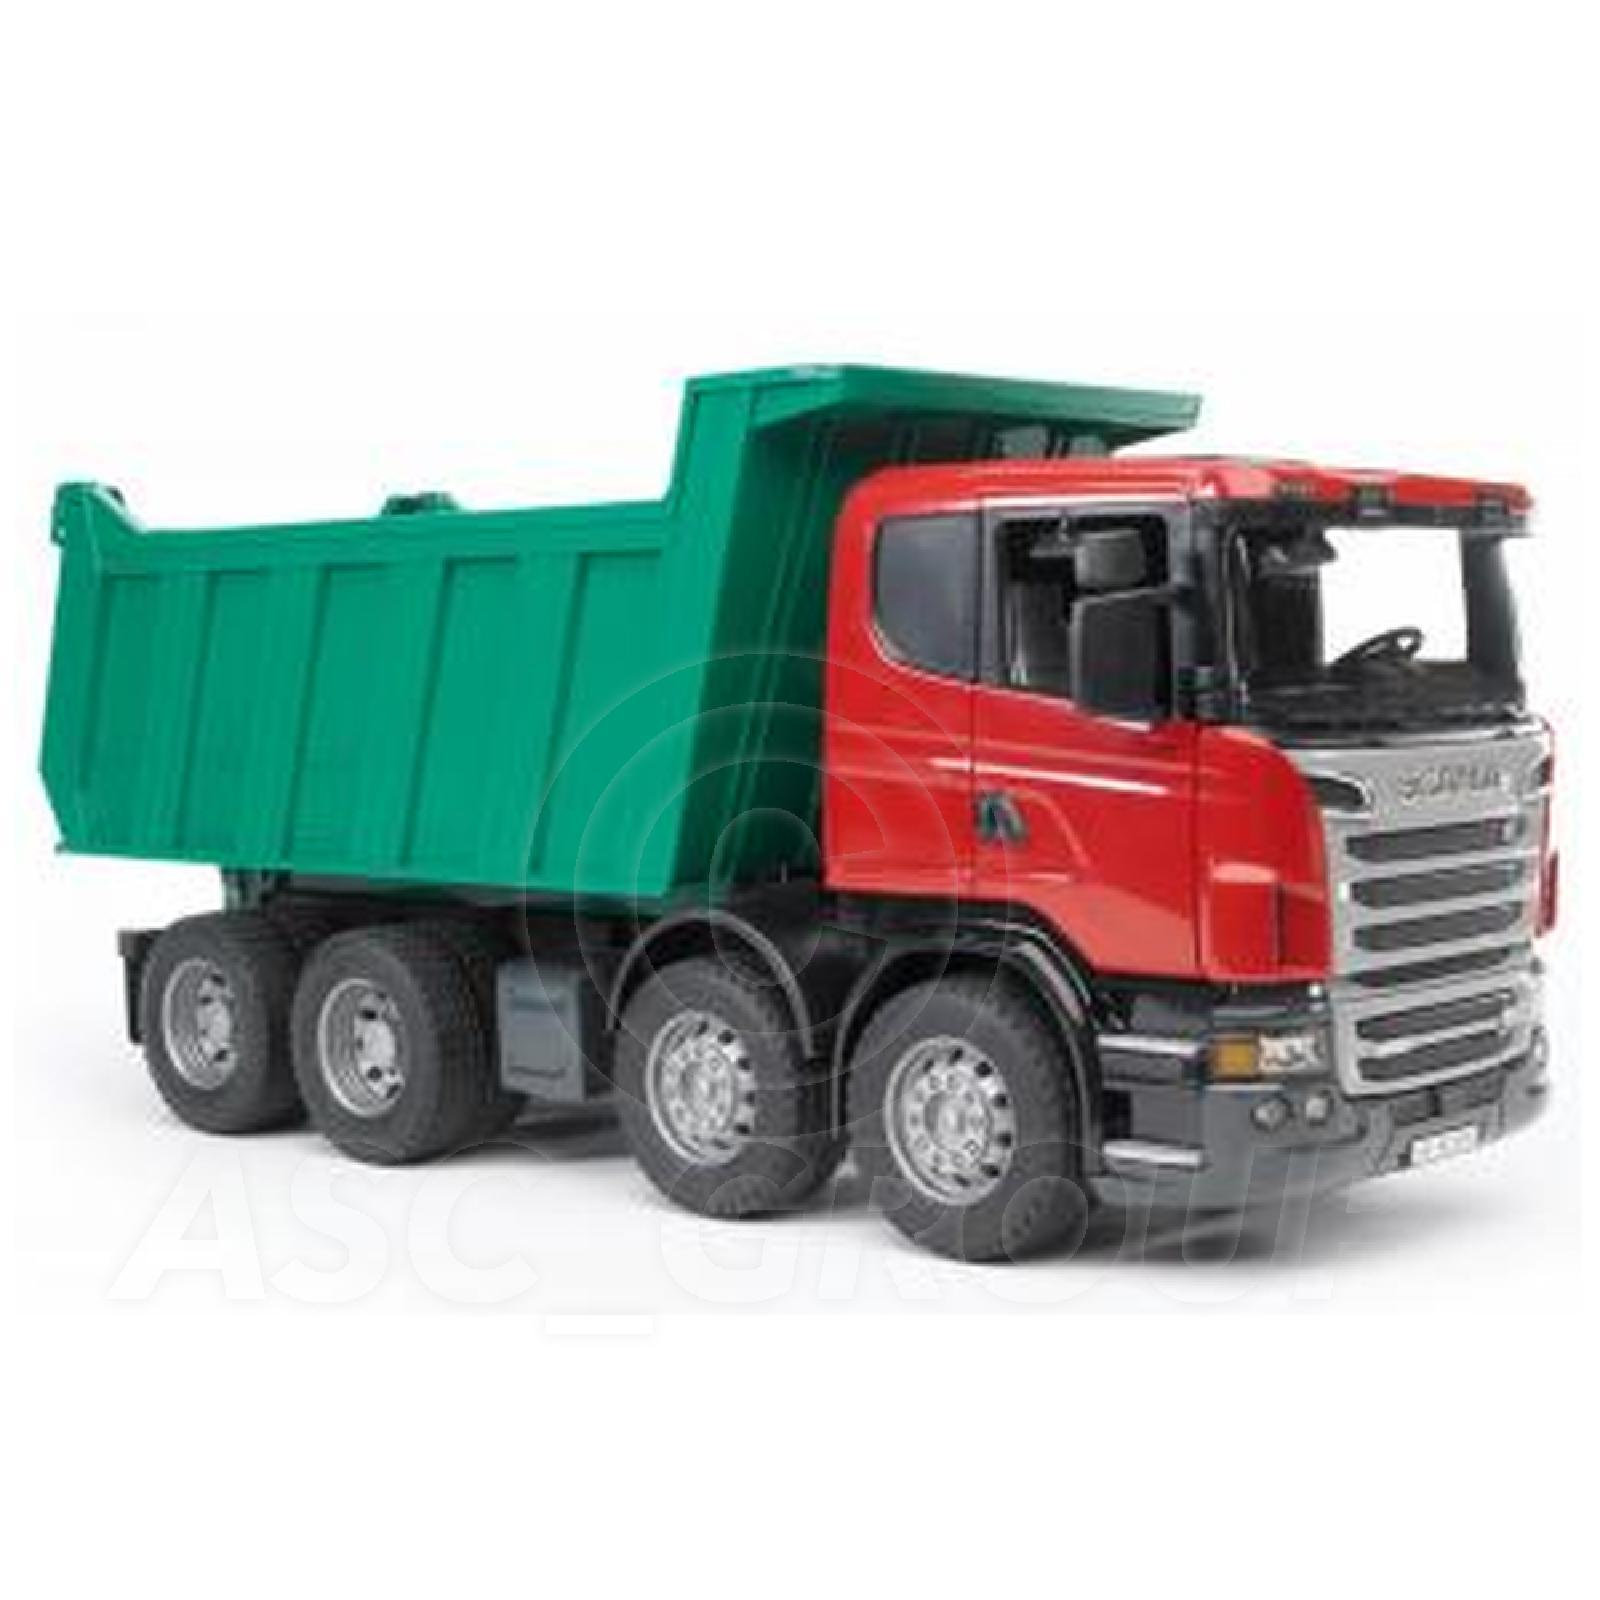 Bruder Toys 03550 Pro Series Scania R Series Tipper Truck